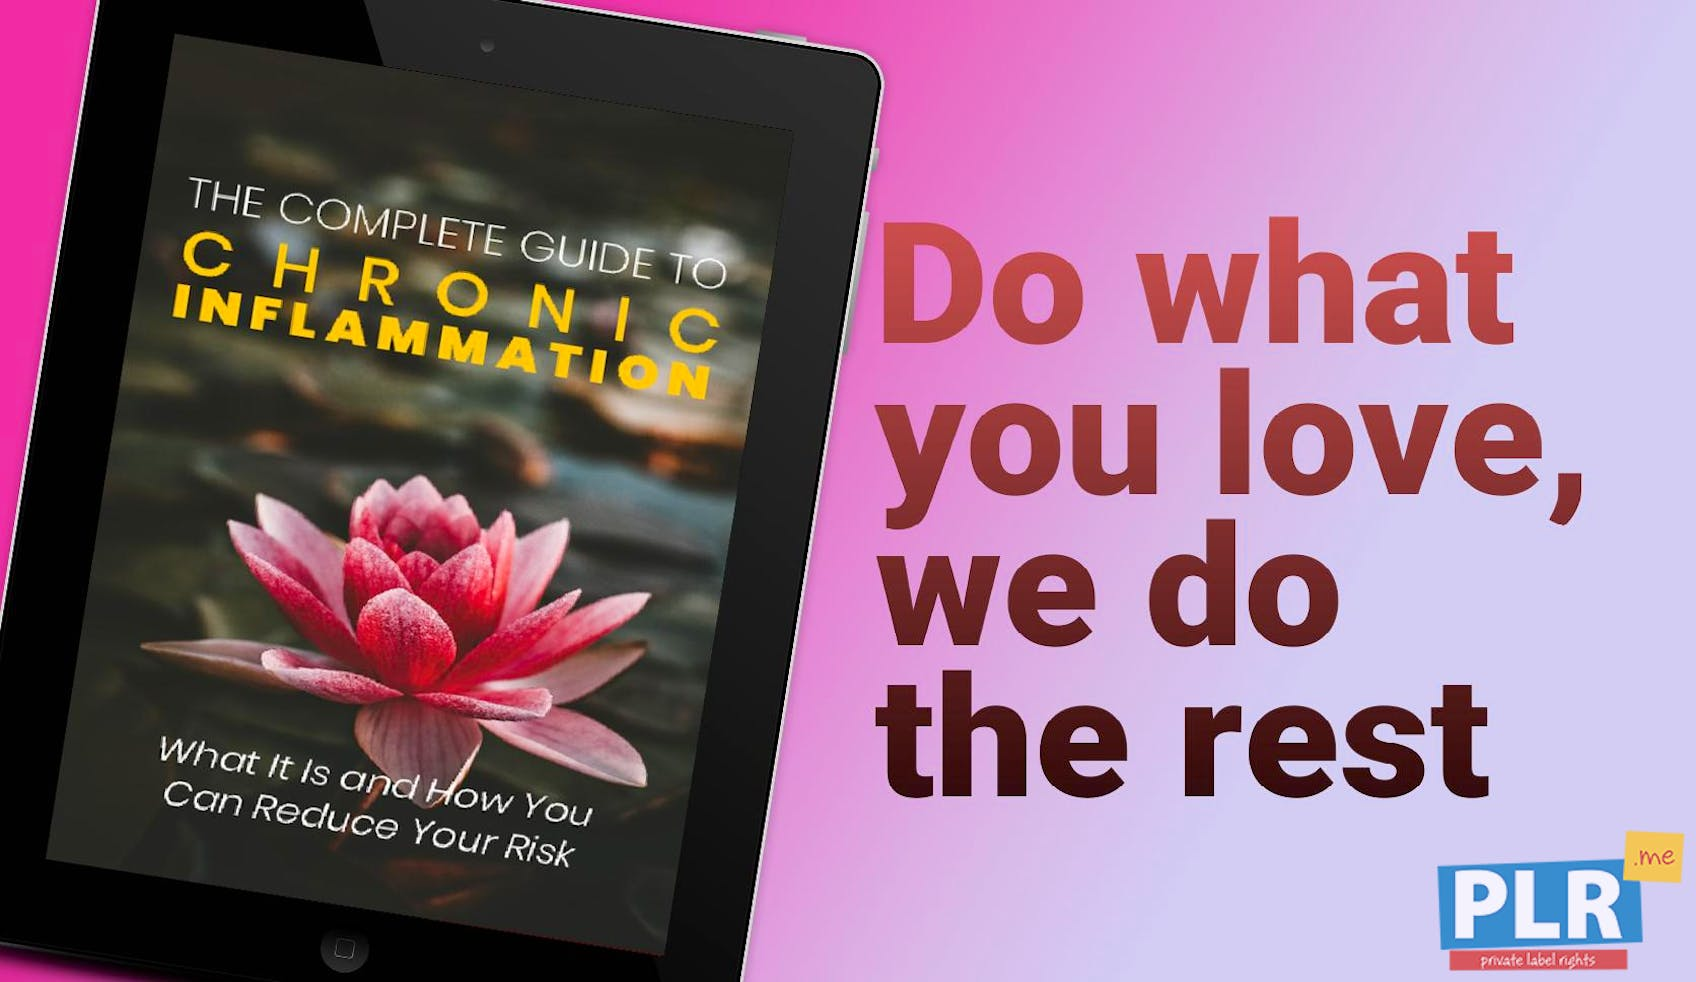 The Complete Guide To Chronic Inflammation